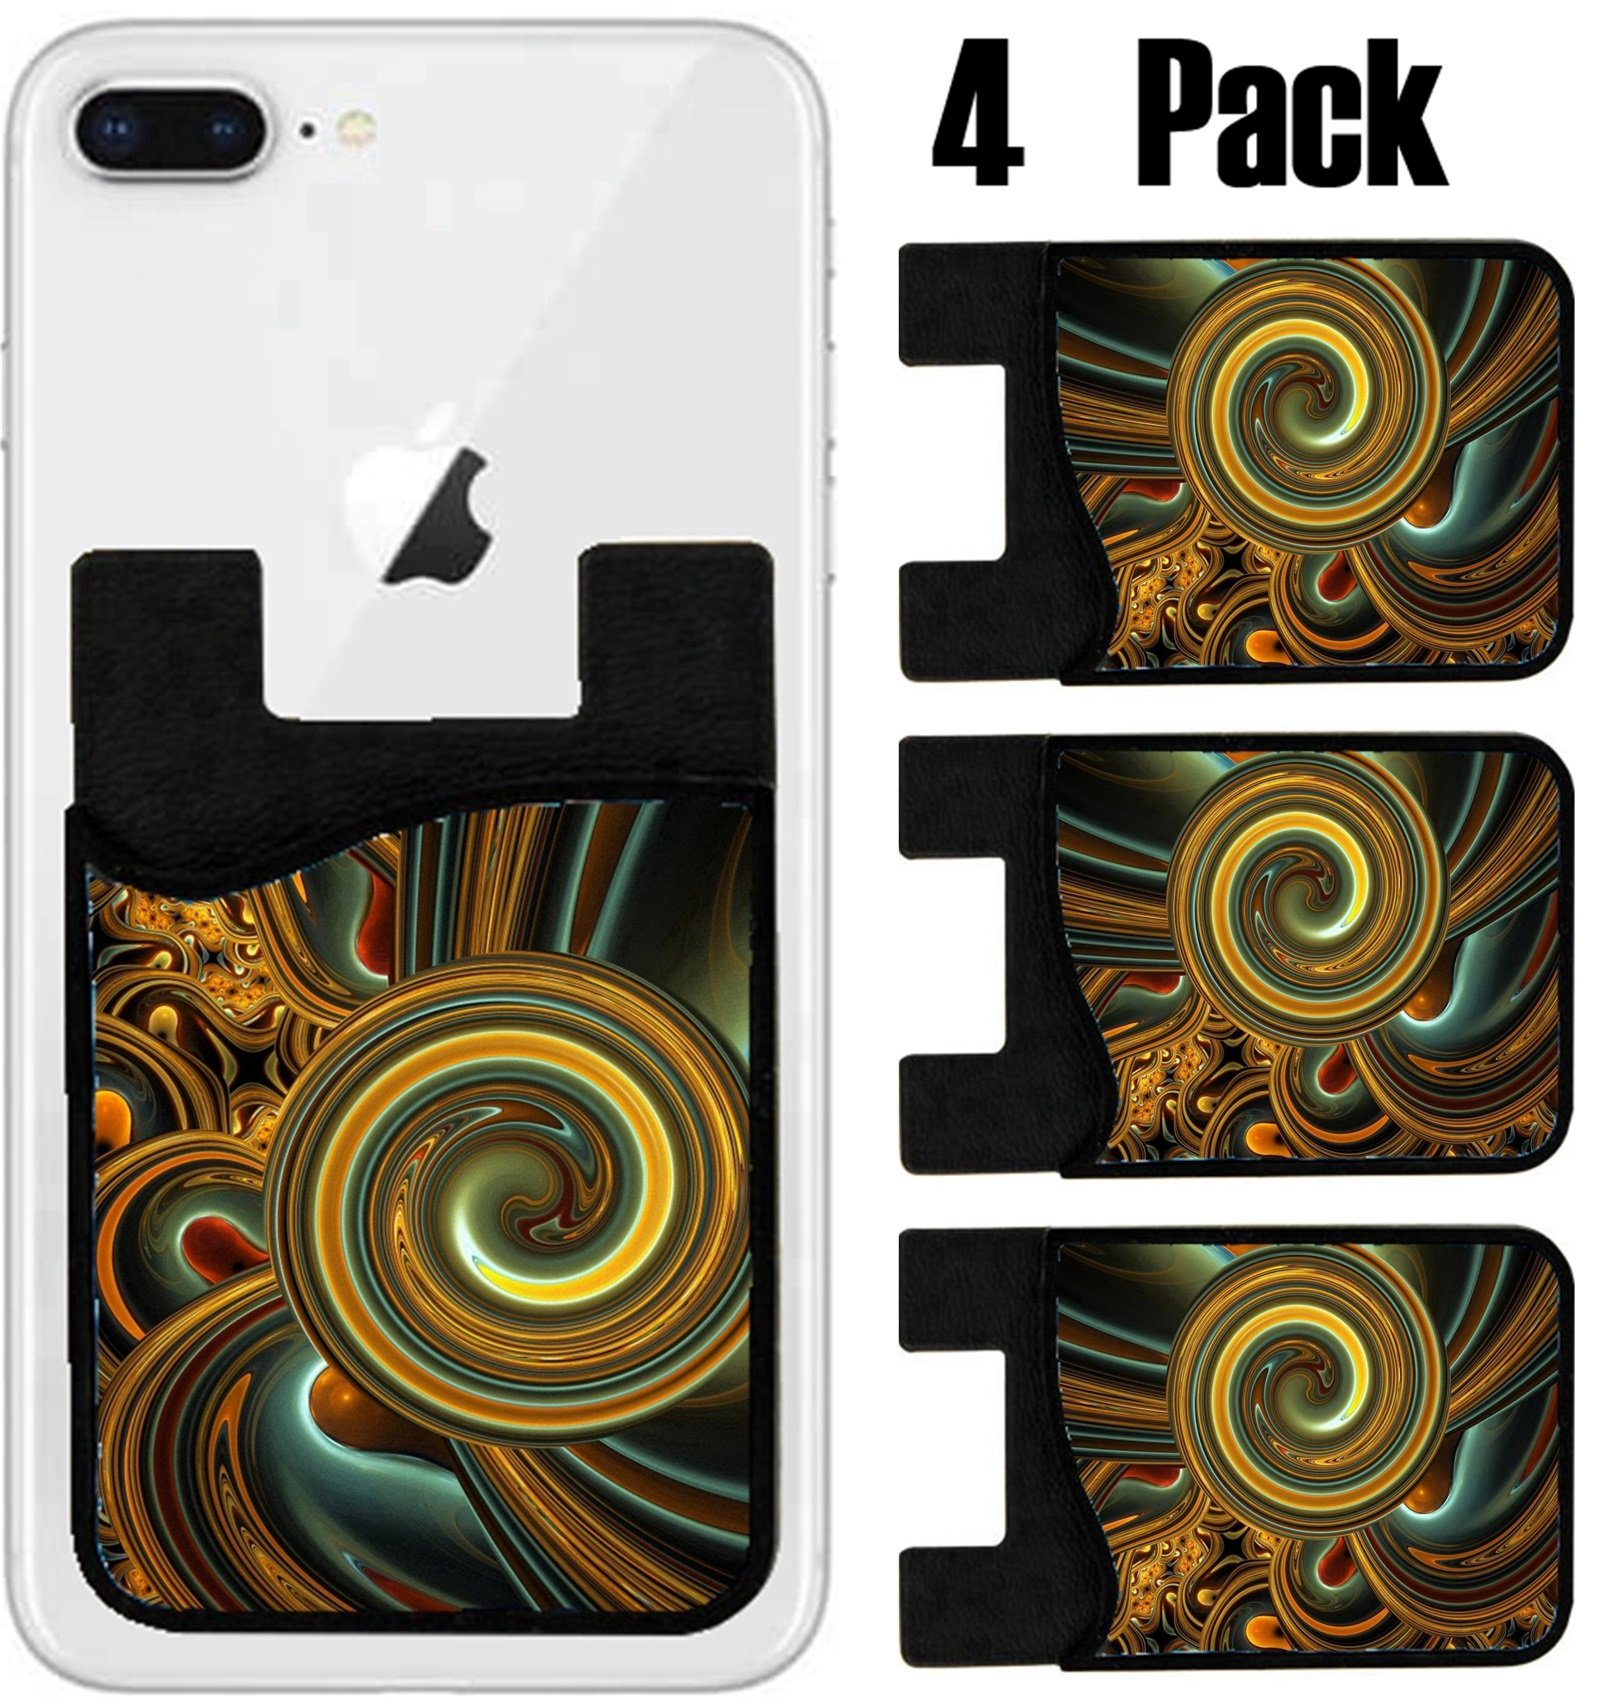 MSD Phone Card holder, sleeve/wallet for iPhone Samsung Android and all smartphones with removable microfiber screen cleaner Silicone card Caddy(4 Pack) Computer generated fractal artwork for creative